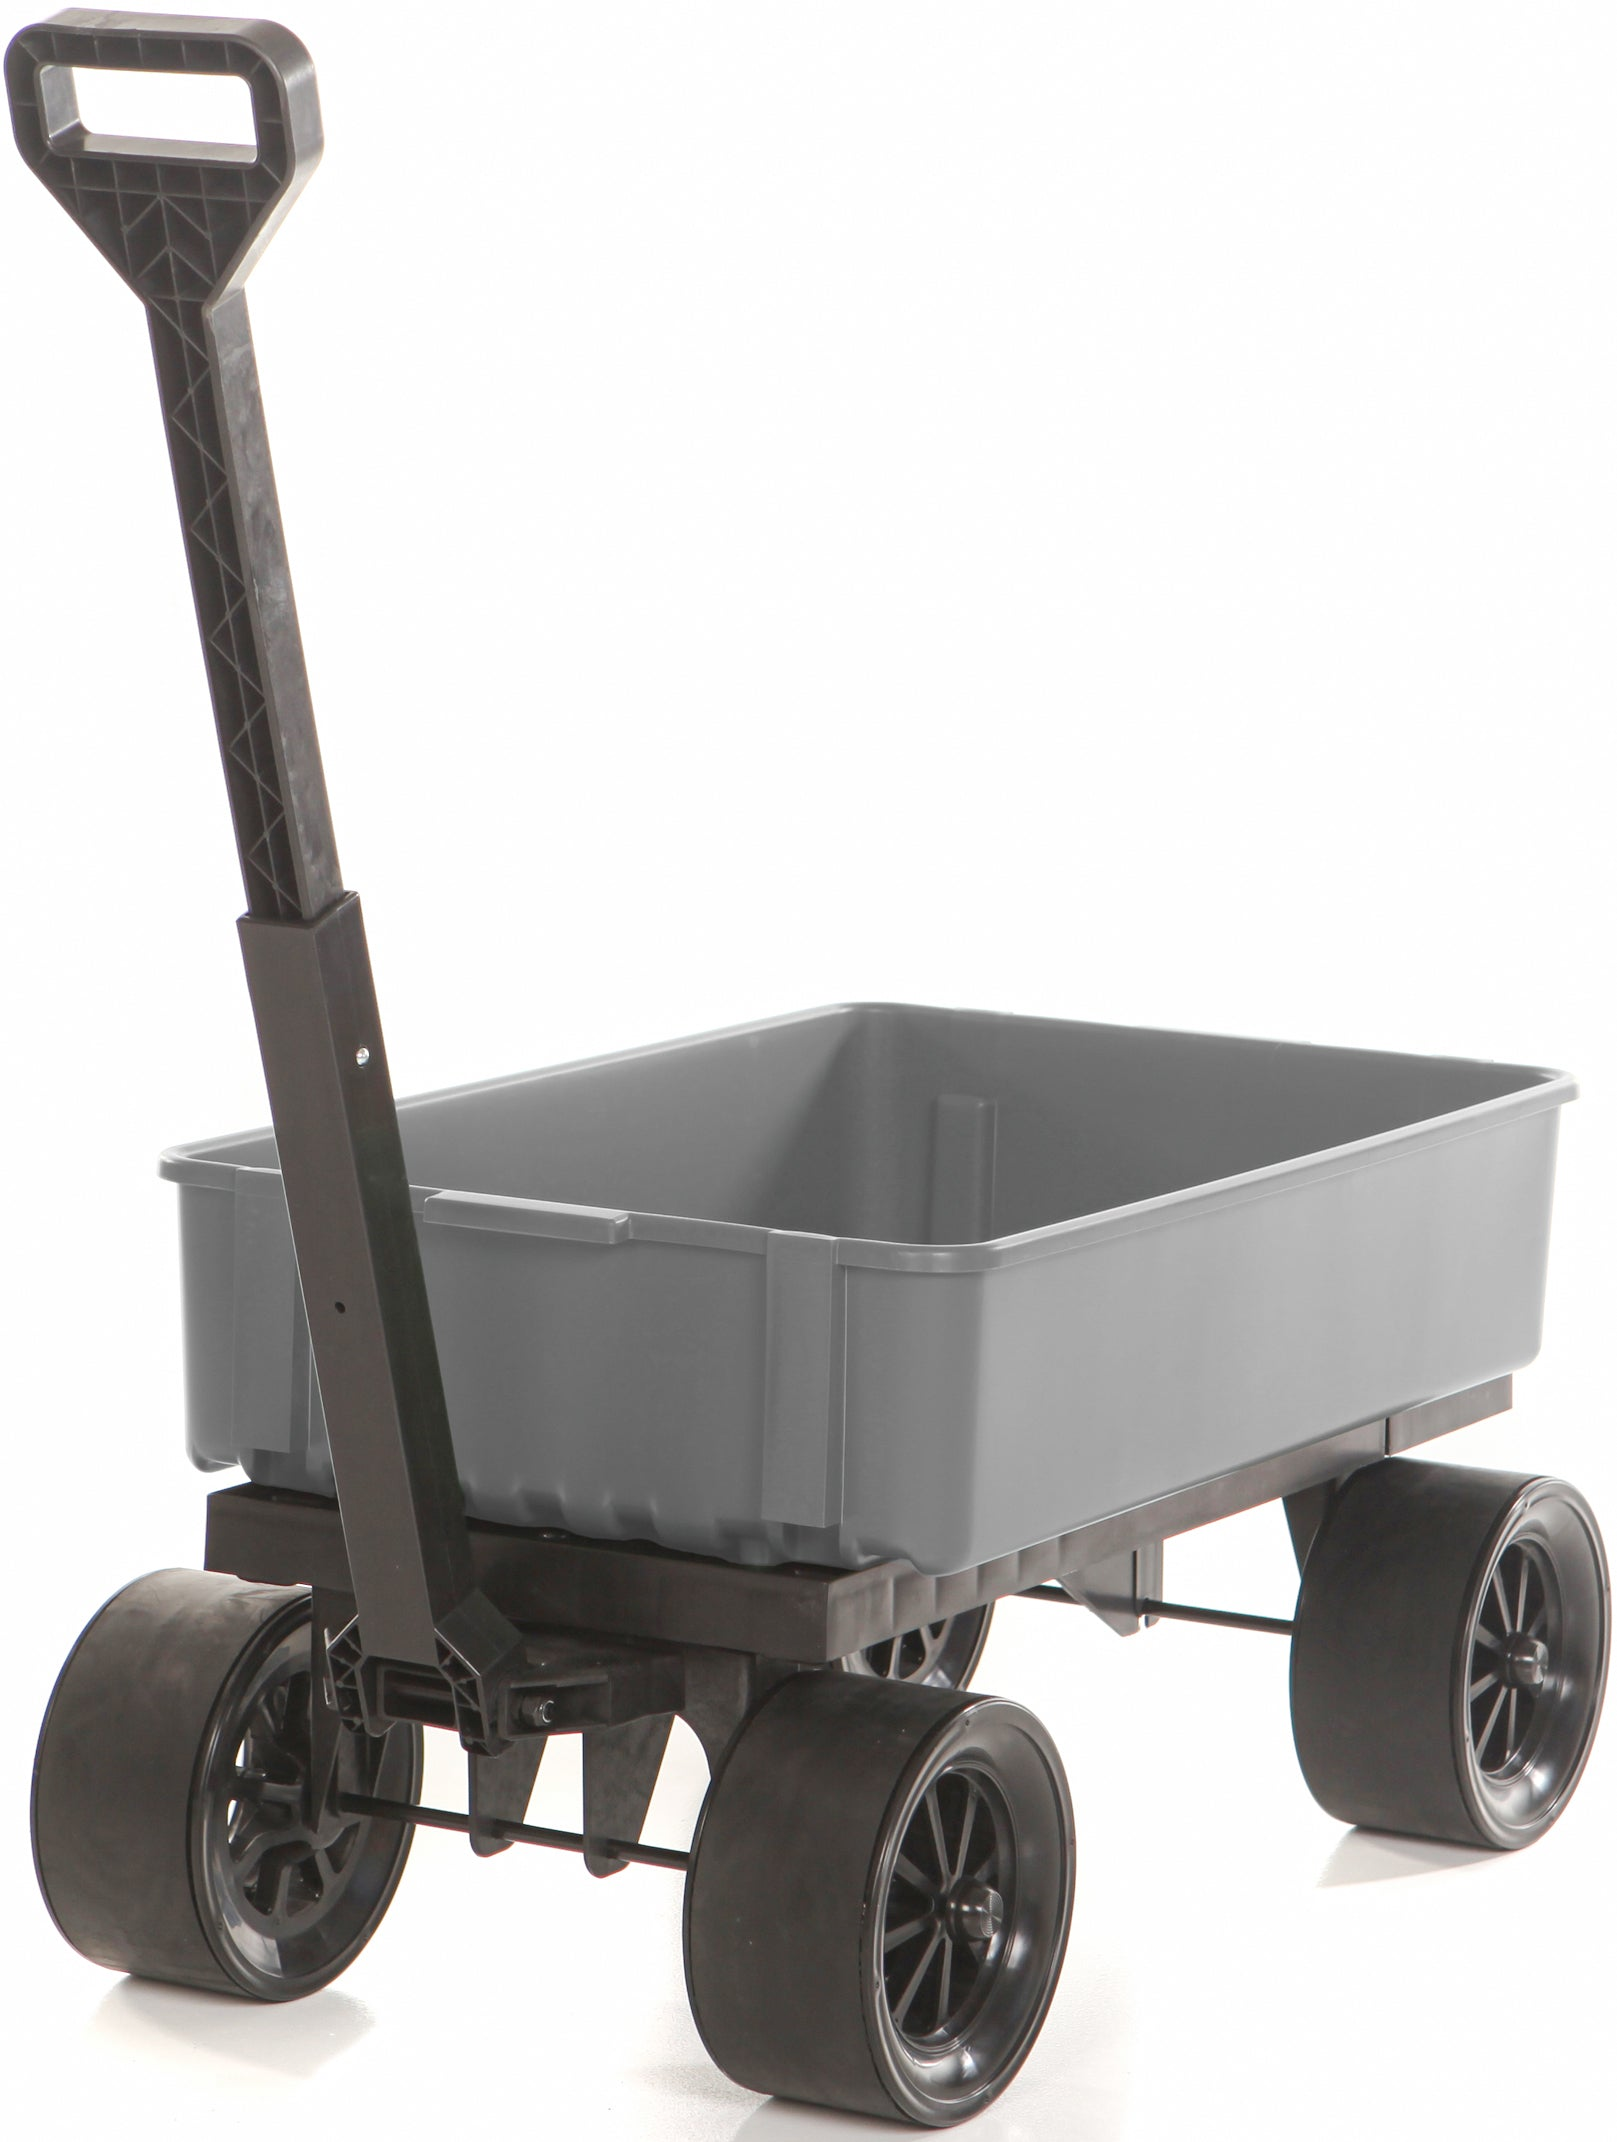 Mighty-max-dolly-flatbed-hand-truck-utility-tool-dump-cart